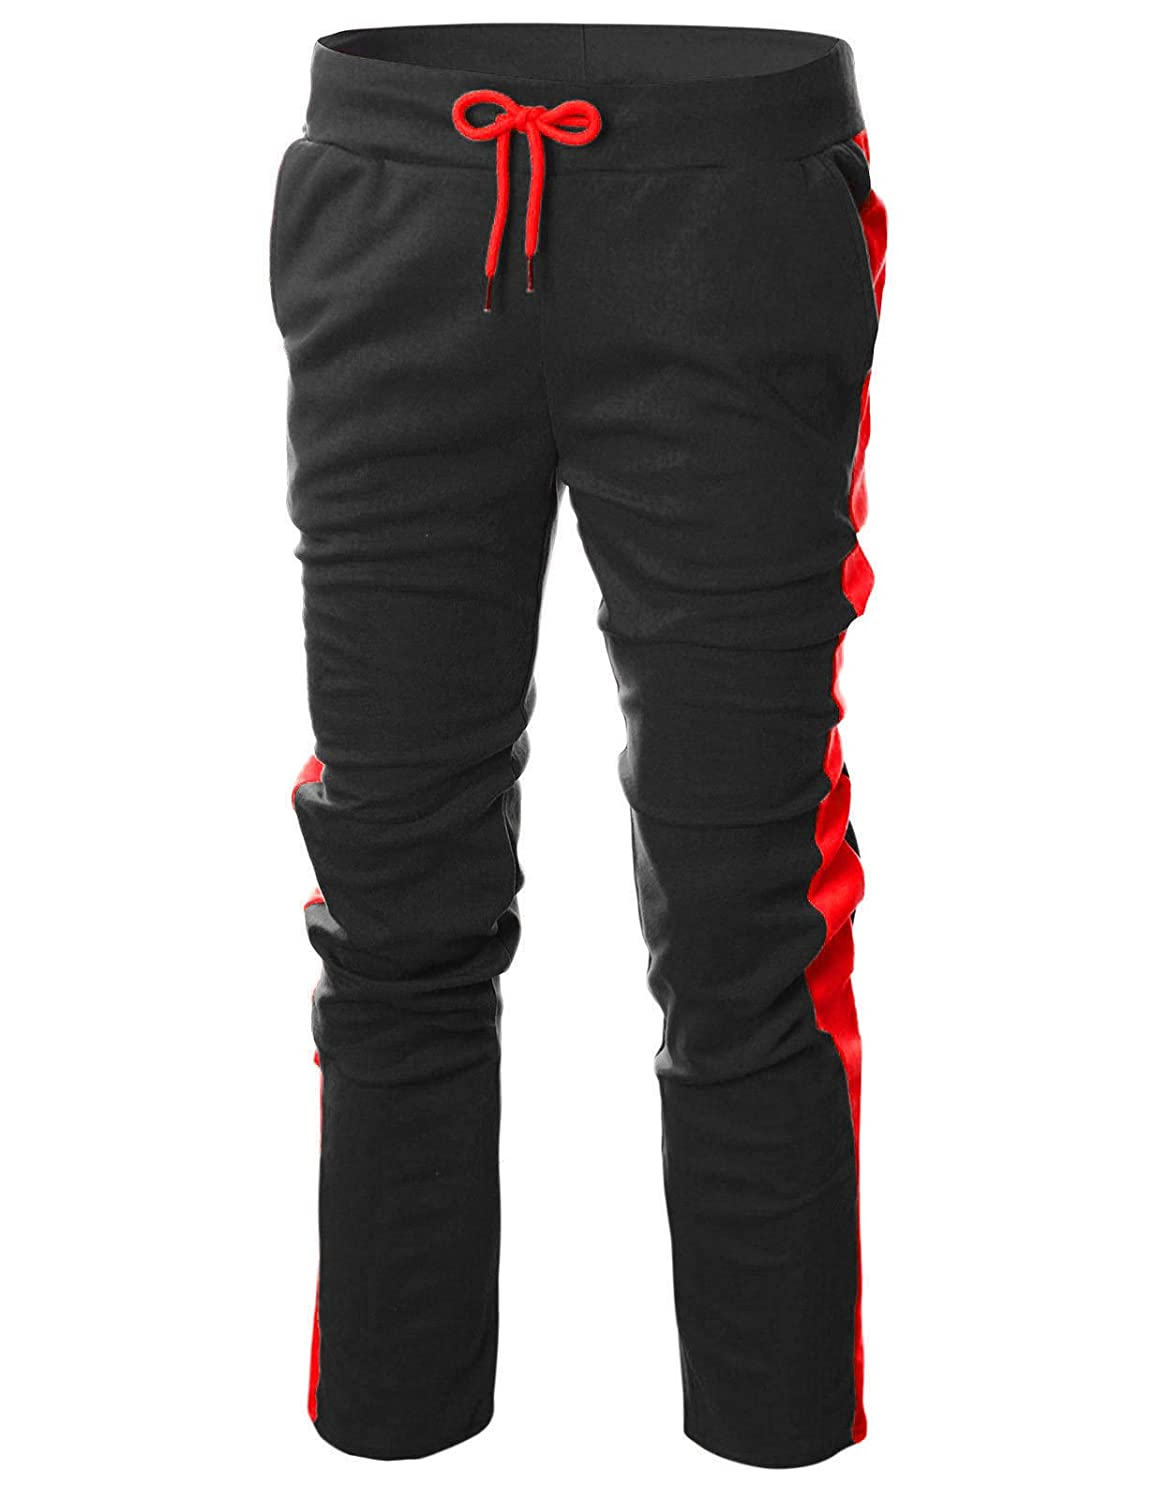 GIVON GIVON PANTS メンズ B07BRT2TMP B07BRT2TMP Dca005 Black/ Red X-Large Red X-Large|Dca005 Black/ Red, SPACE(スペース):89e2e267 --- krianta.com